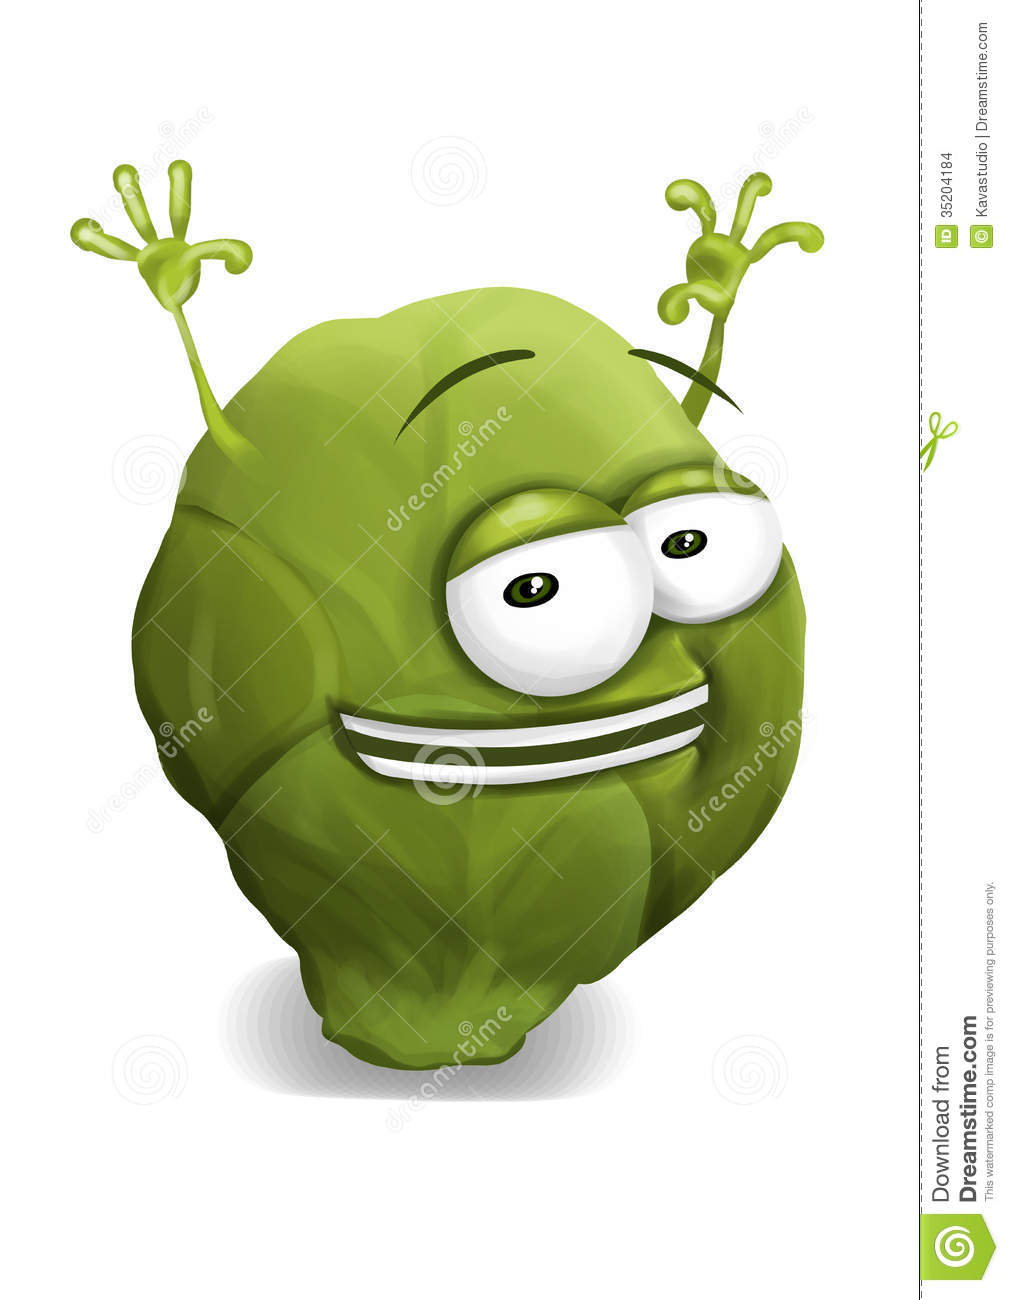 cartoon brussel sprouts MEMES